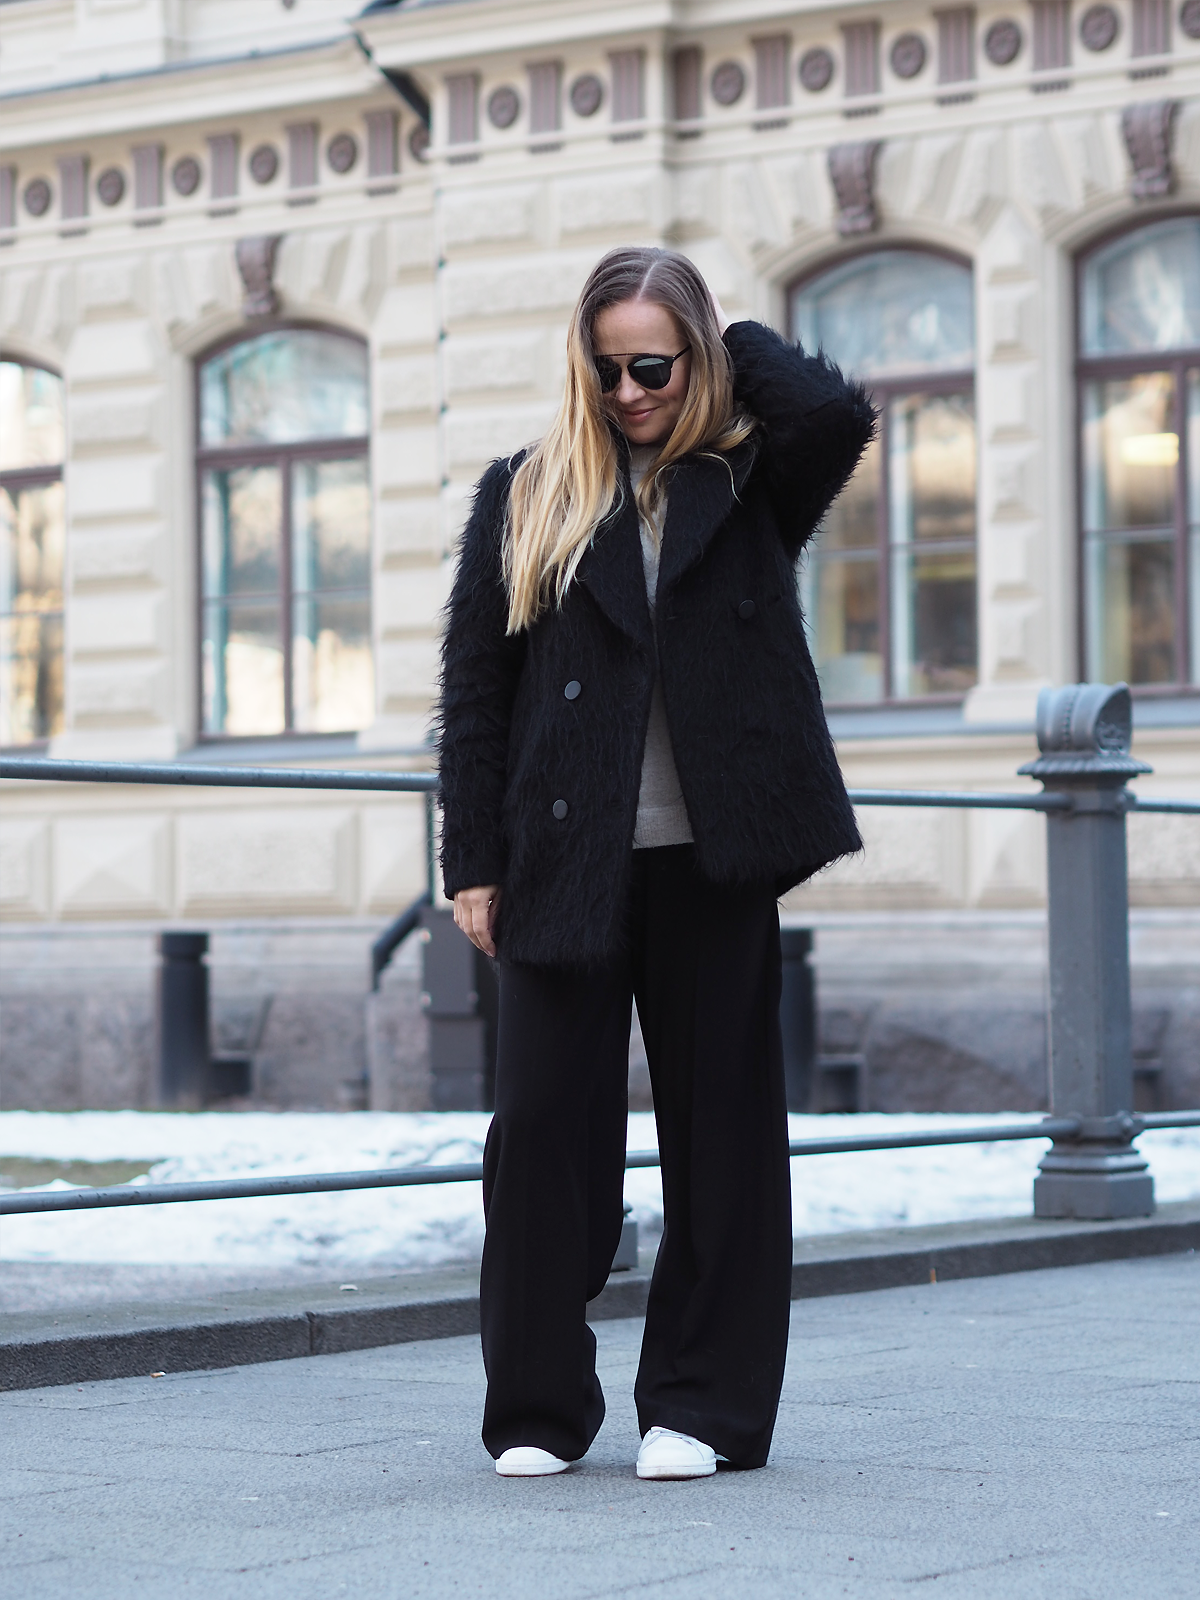 Coat  Tiger of Sweden /  pants  Part Two /  knit  Filippa K /  sneakers  Adidas /  sunnies  Dior